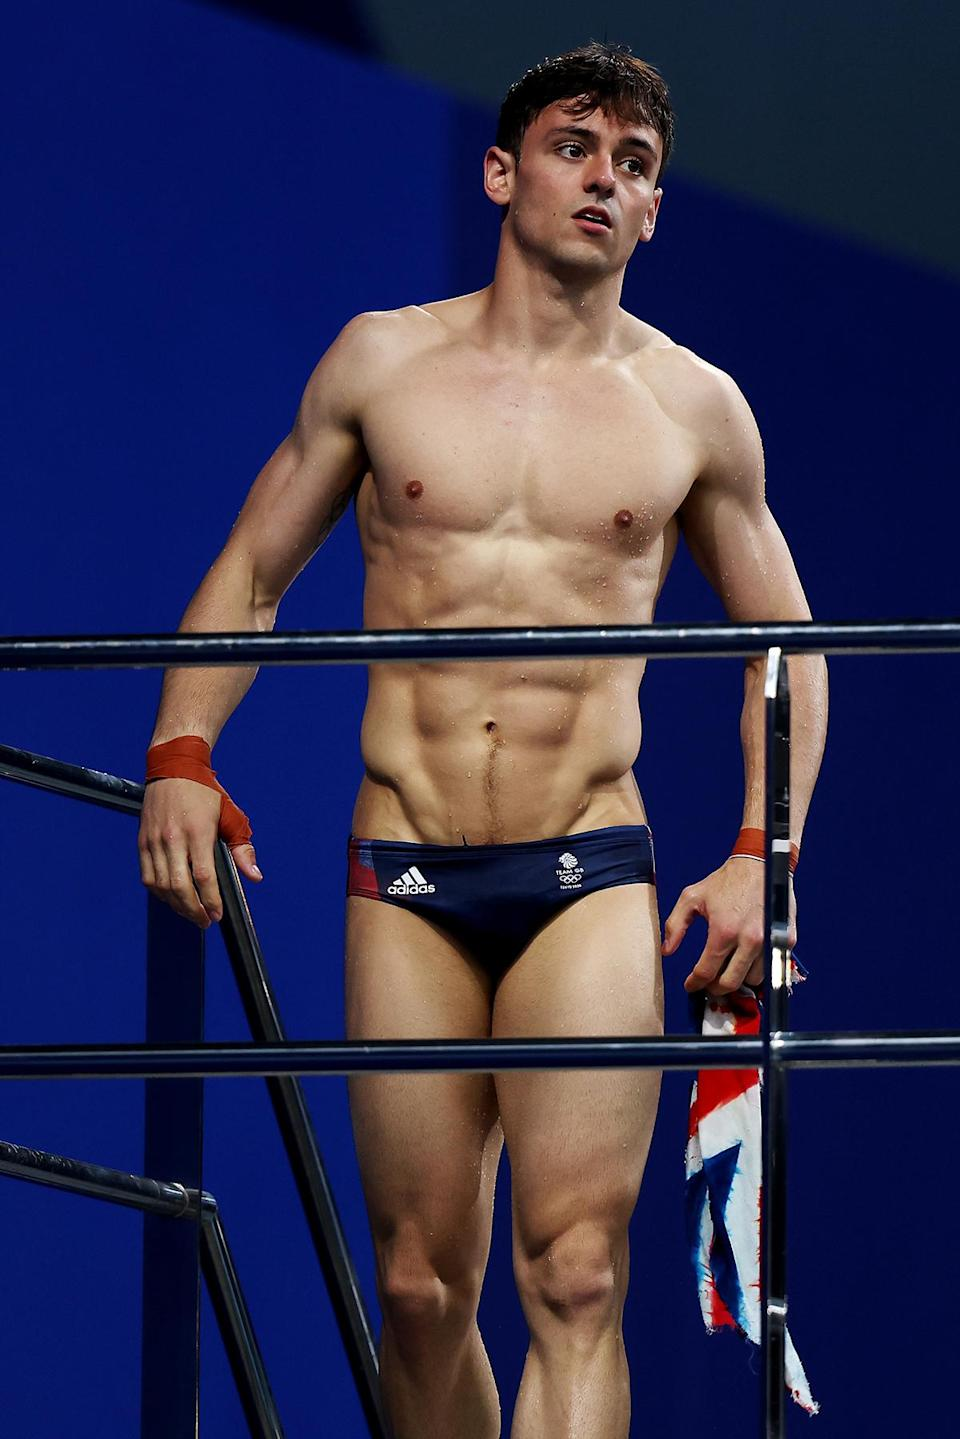 Tom Daley of Team Great Britain during aquatics training at the Tokyo Aquatics Centre ahead of the Tokyo 2020 Olympic Games - Credit: Clive Rose/Getty Images